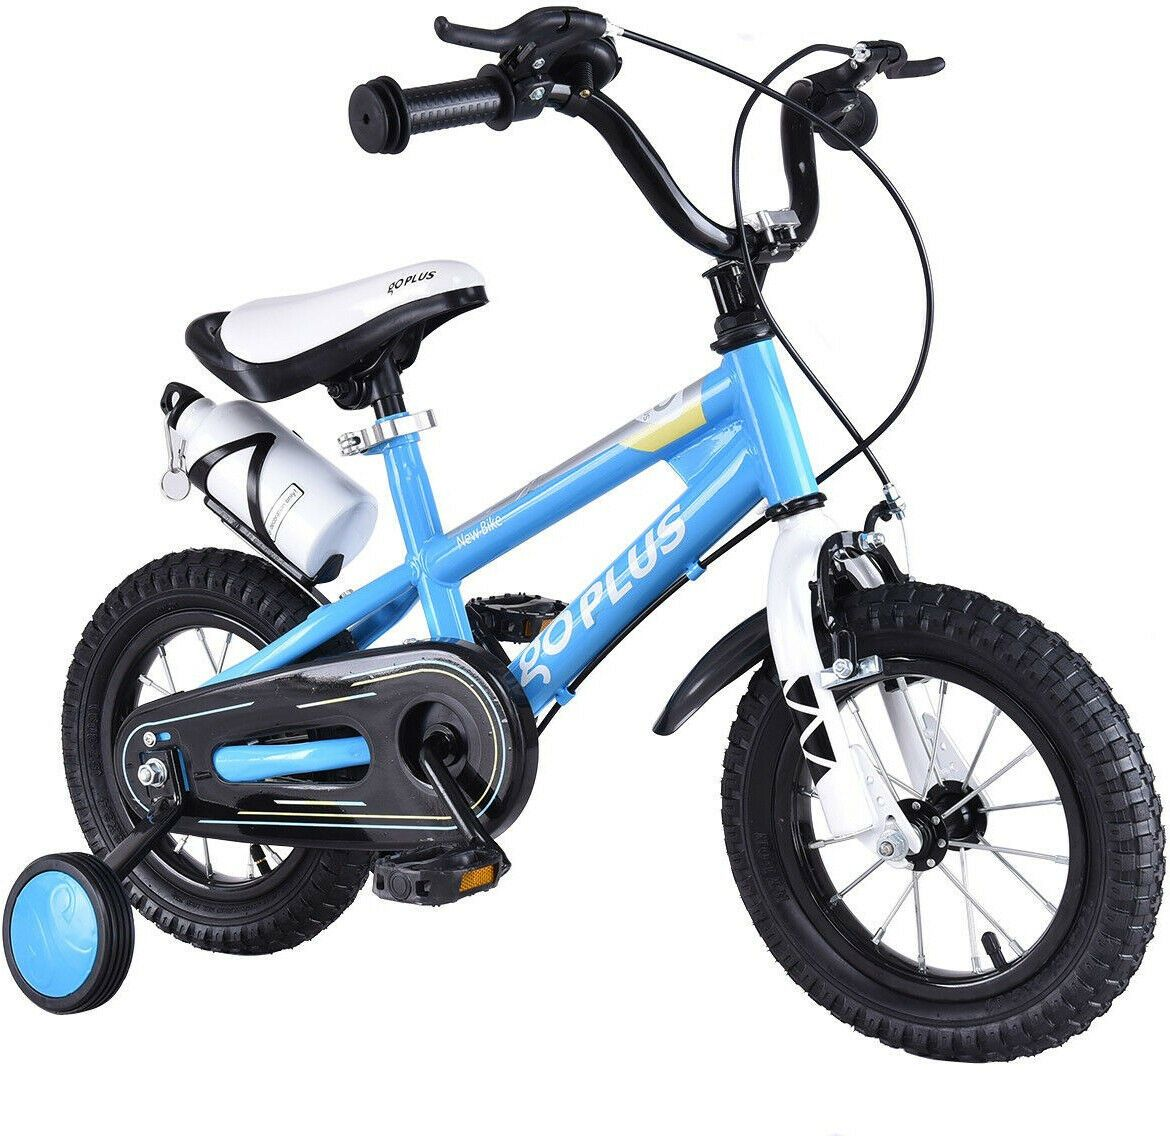 NEW Black Kids Bike Saddle BMX Bicycle for Kids Bike Boys /& Girls *Grips Includ